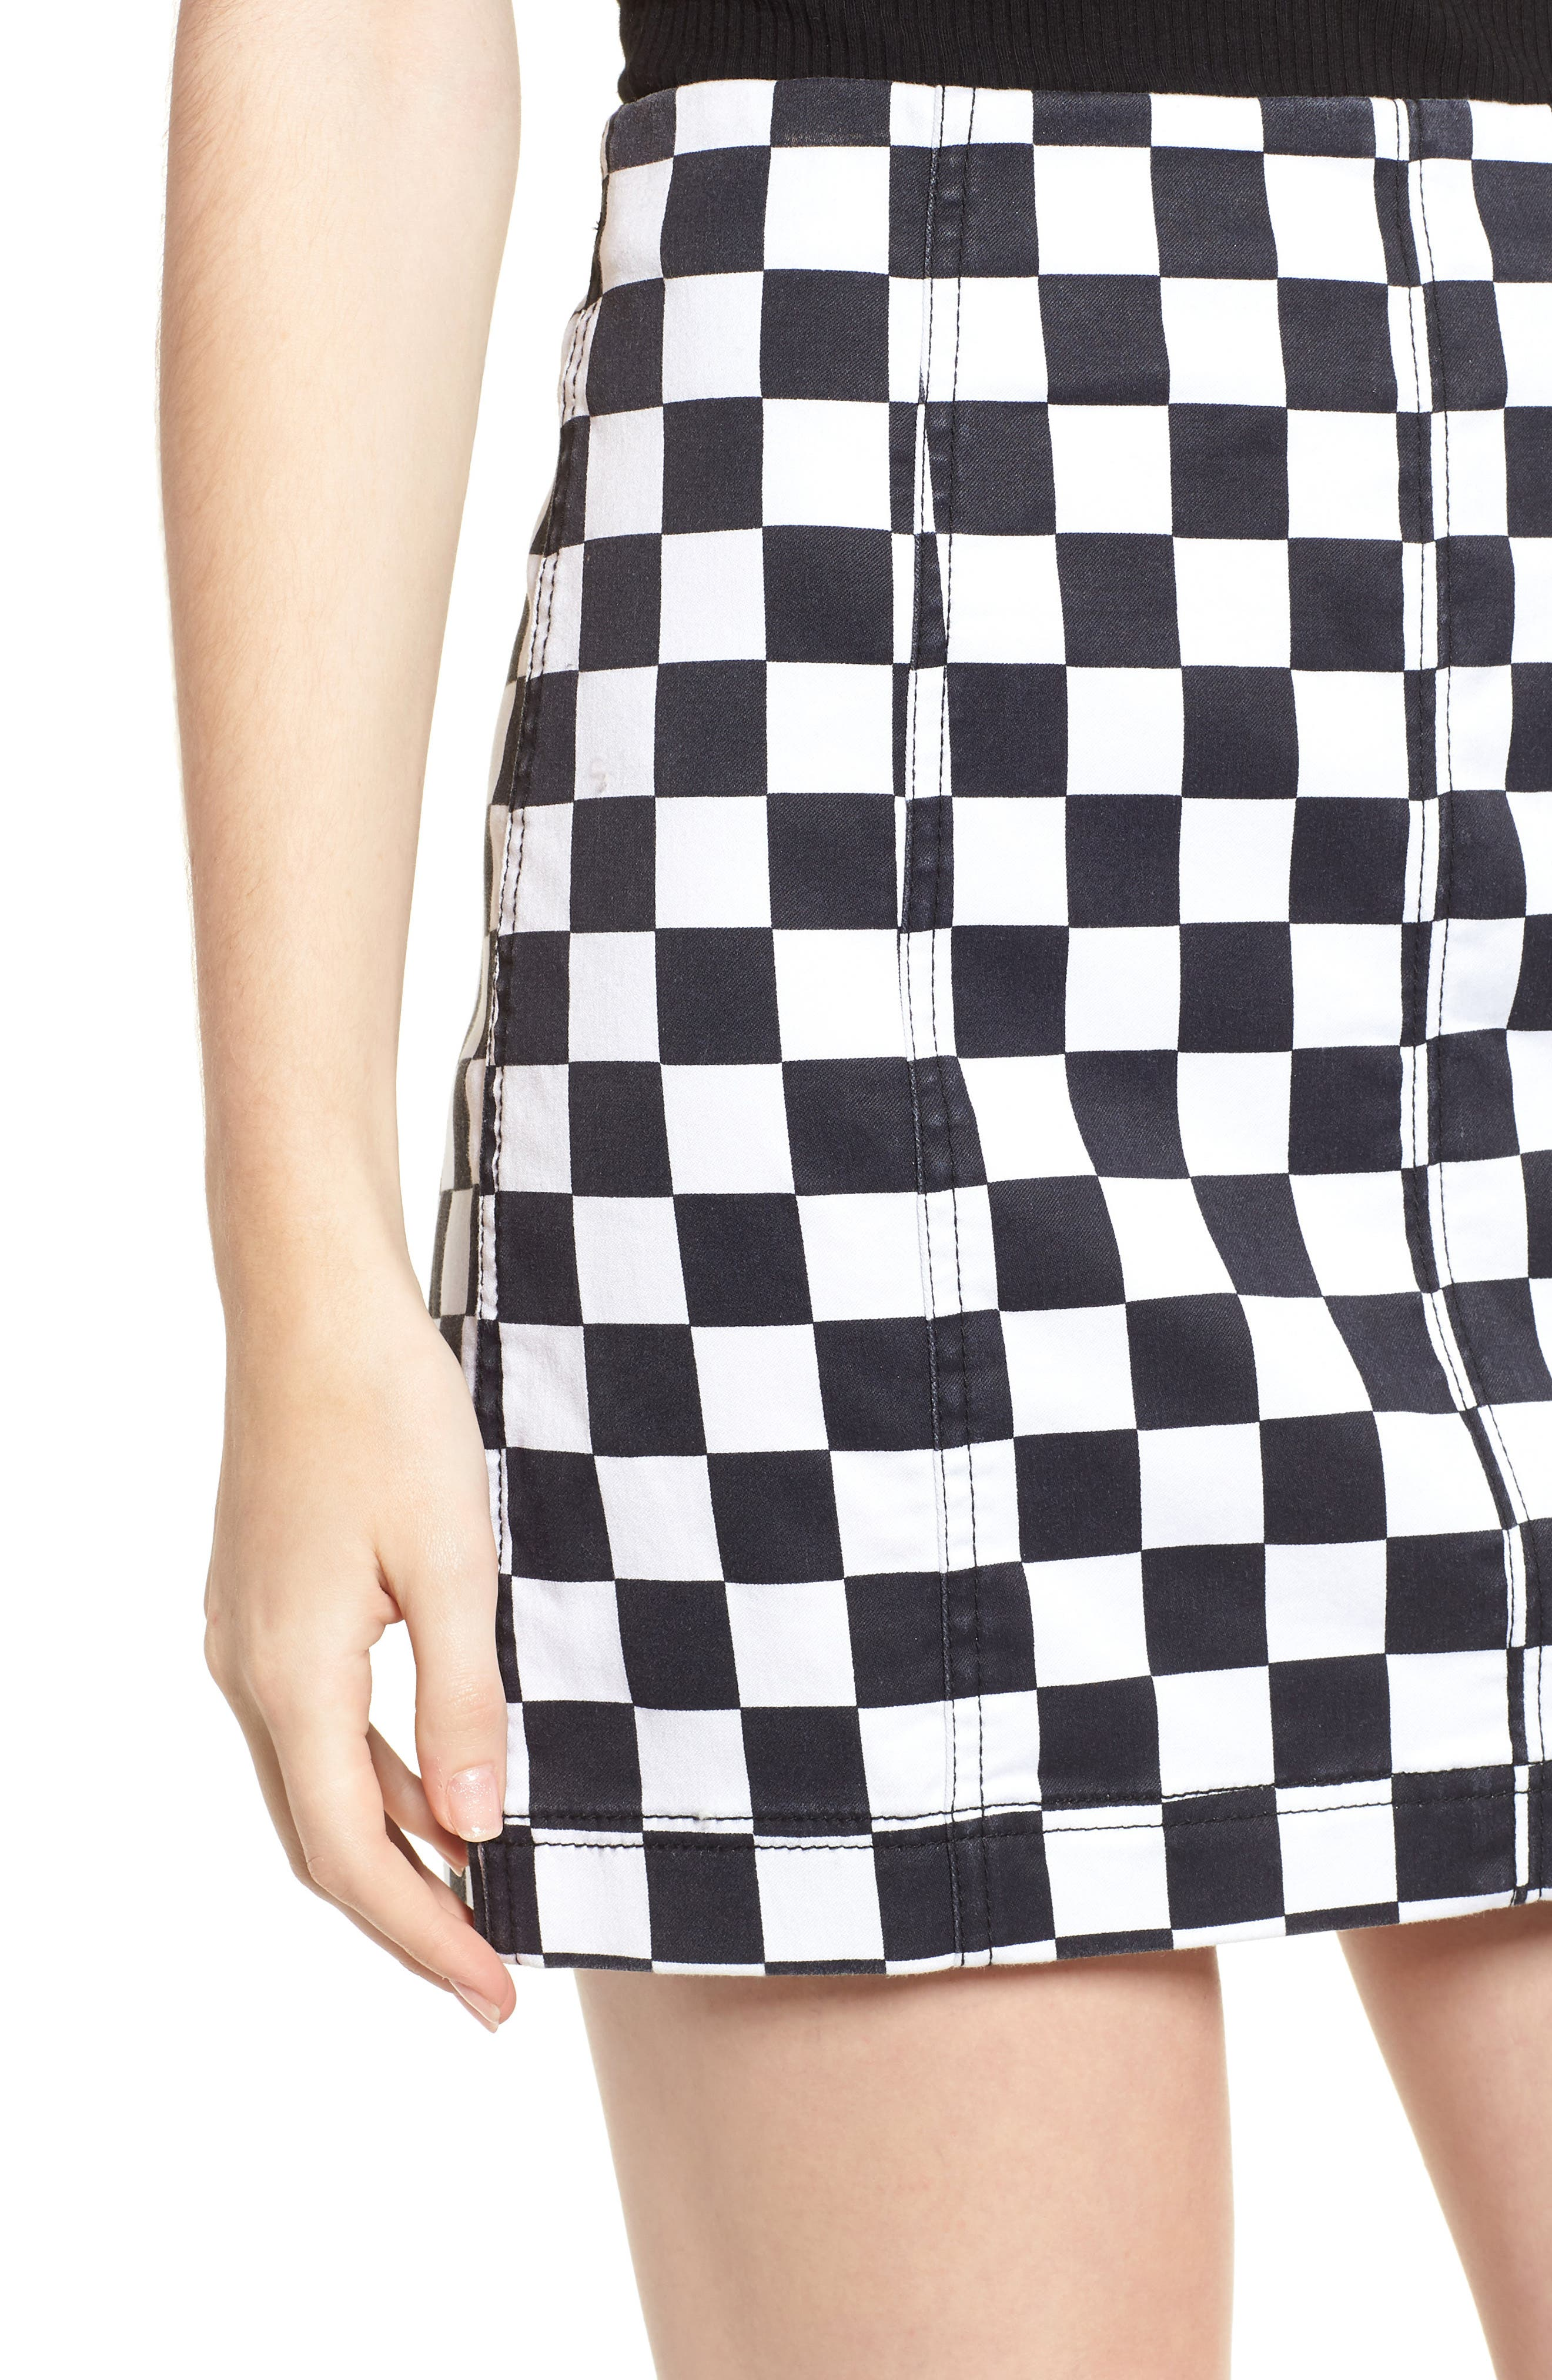 Checkered Denim Miniskirt,                             Alternate thumbnail 4, color,                             Black/ White Checkered